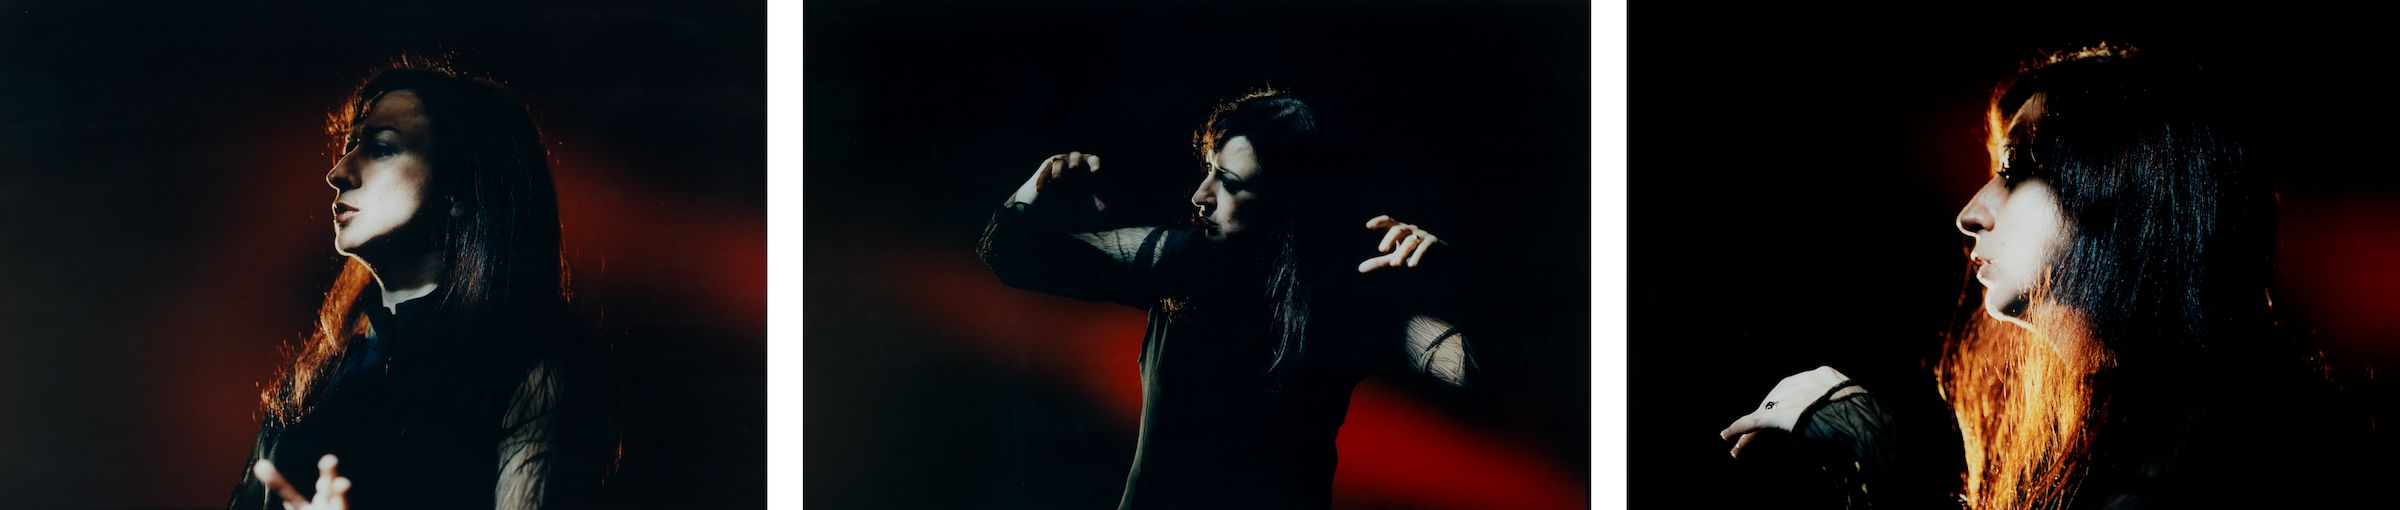 Simone Young, 2002 by Bill Henson